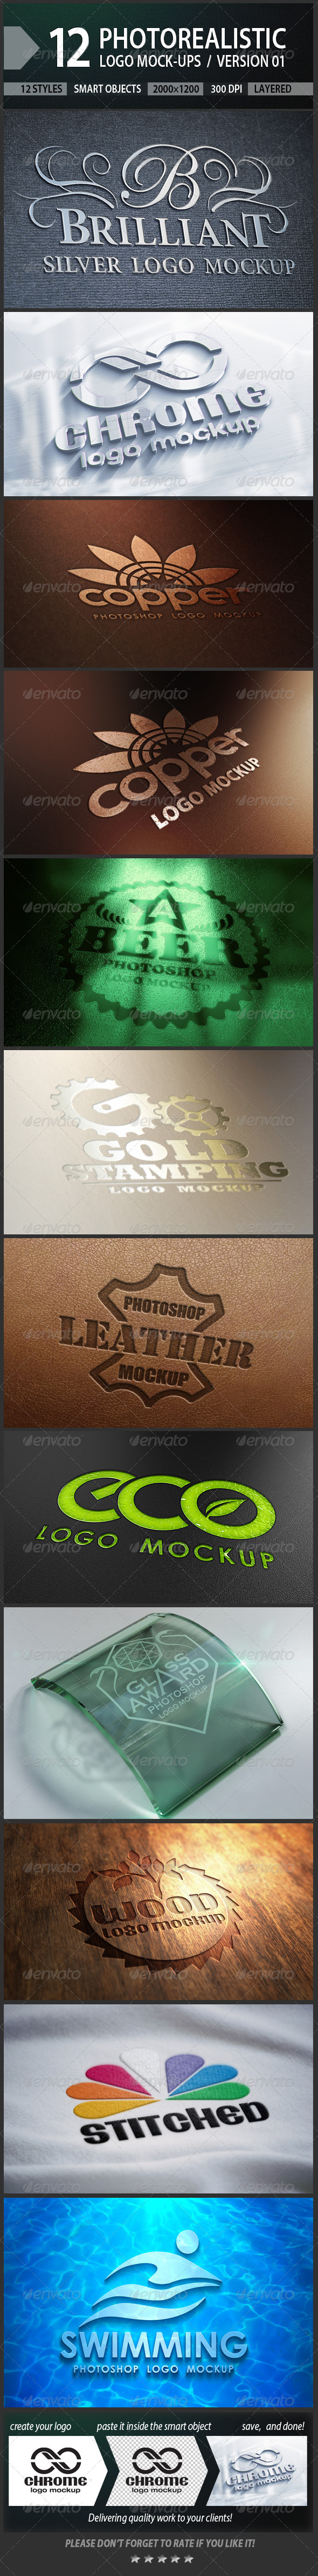 12 Photorealistic Logo Mock-ups / Version 01 - Logo Product Mock-Ups